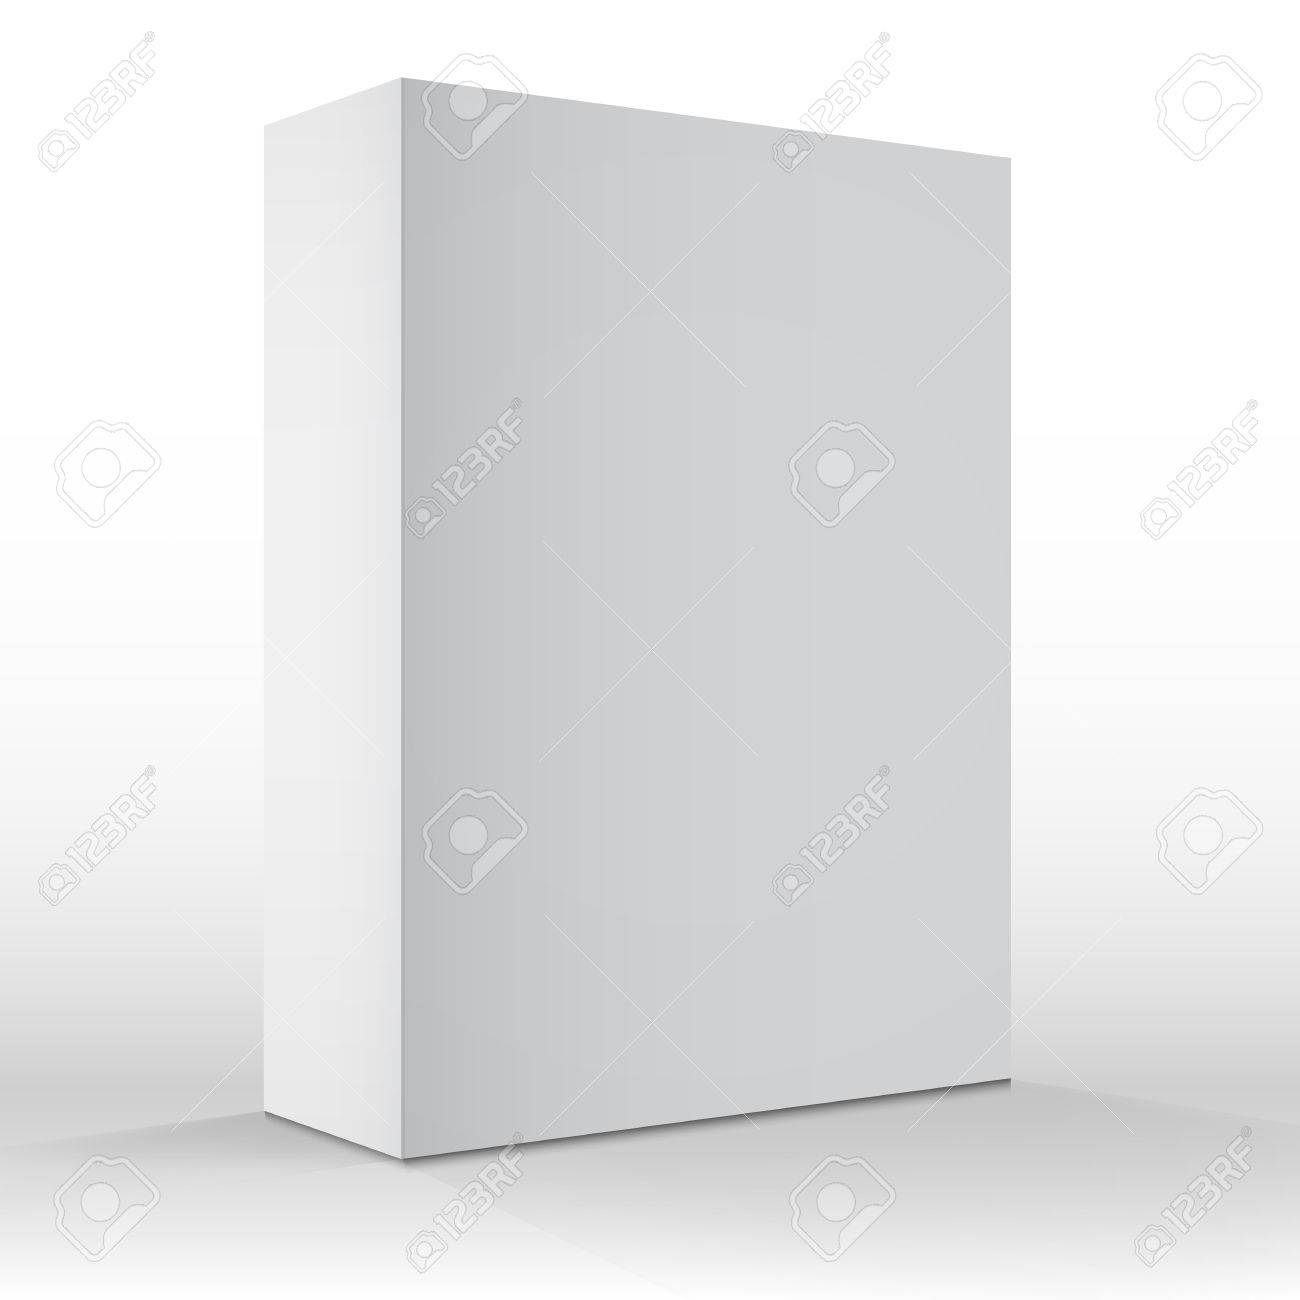 illustration of realistic vector blank white packaging box template